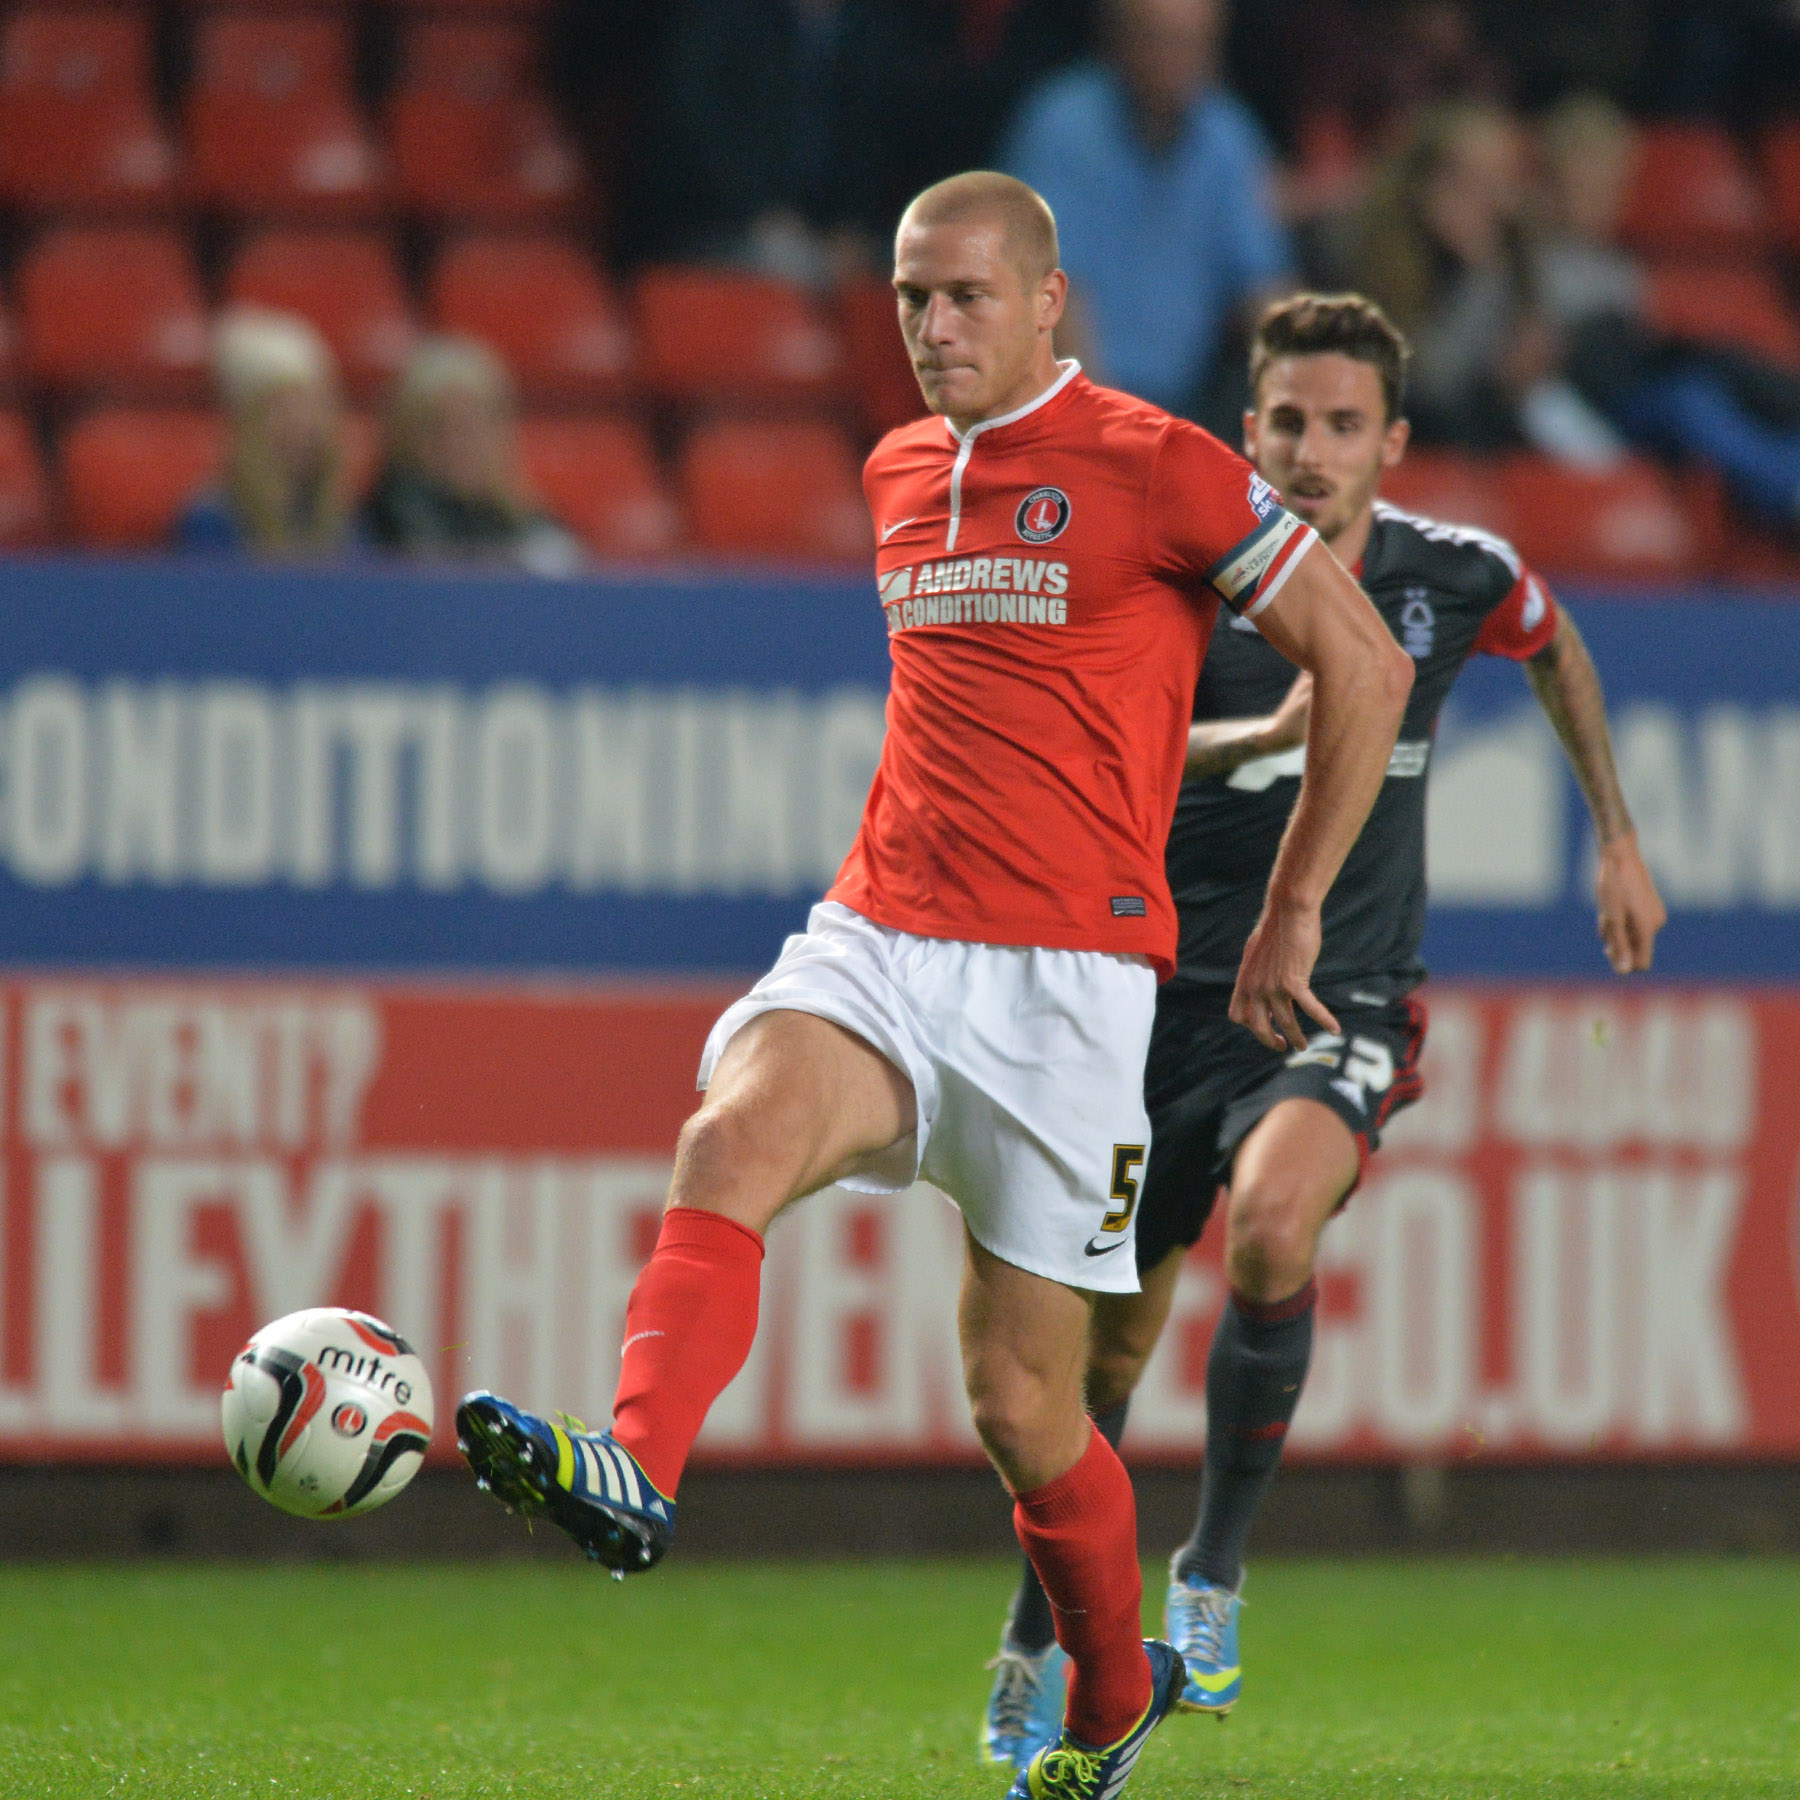 Charlton defender determined to avoid drop